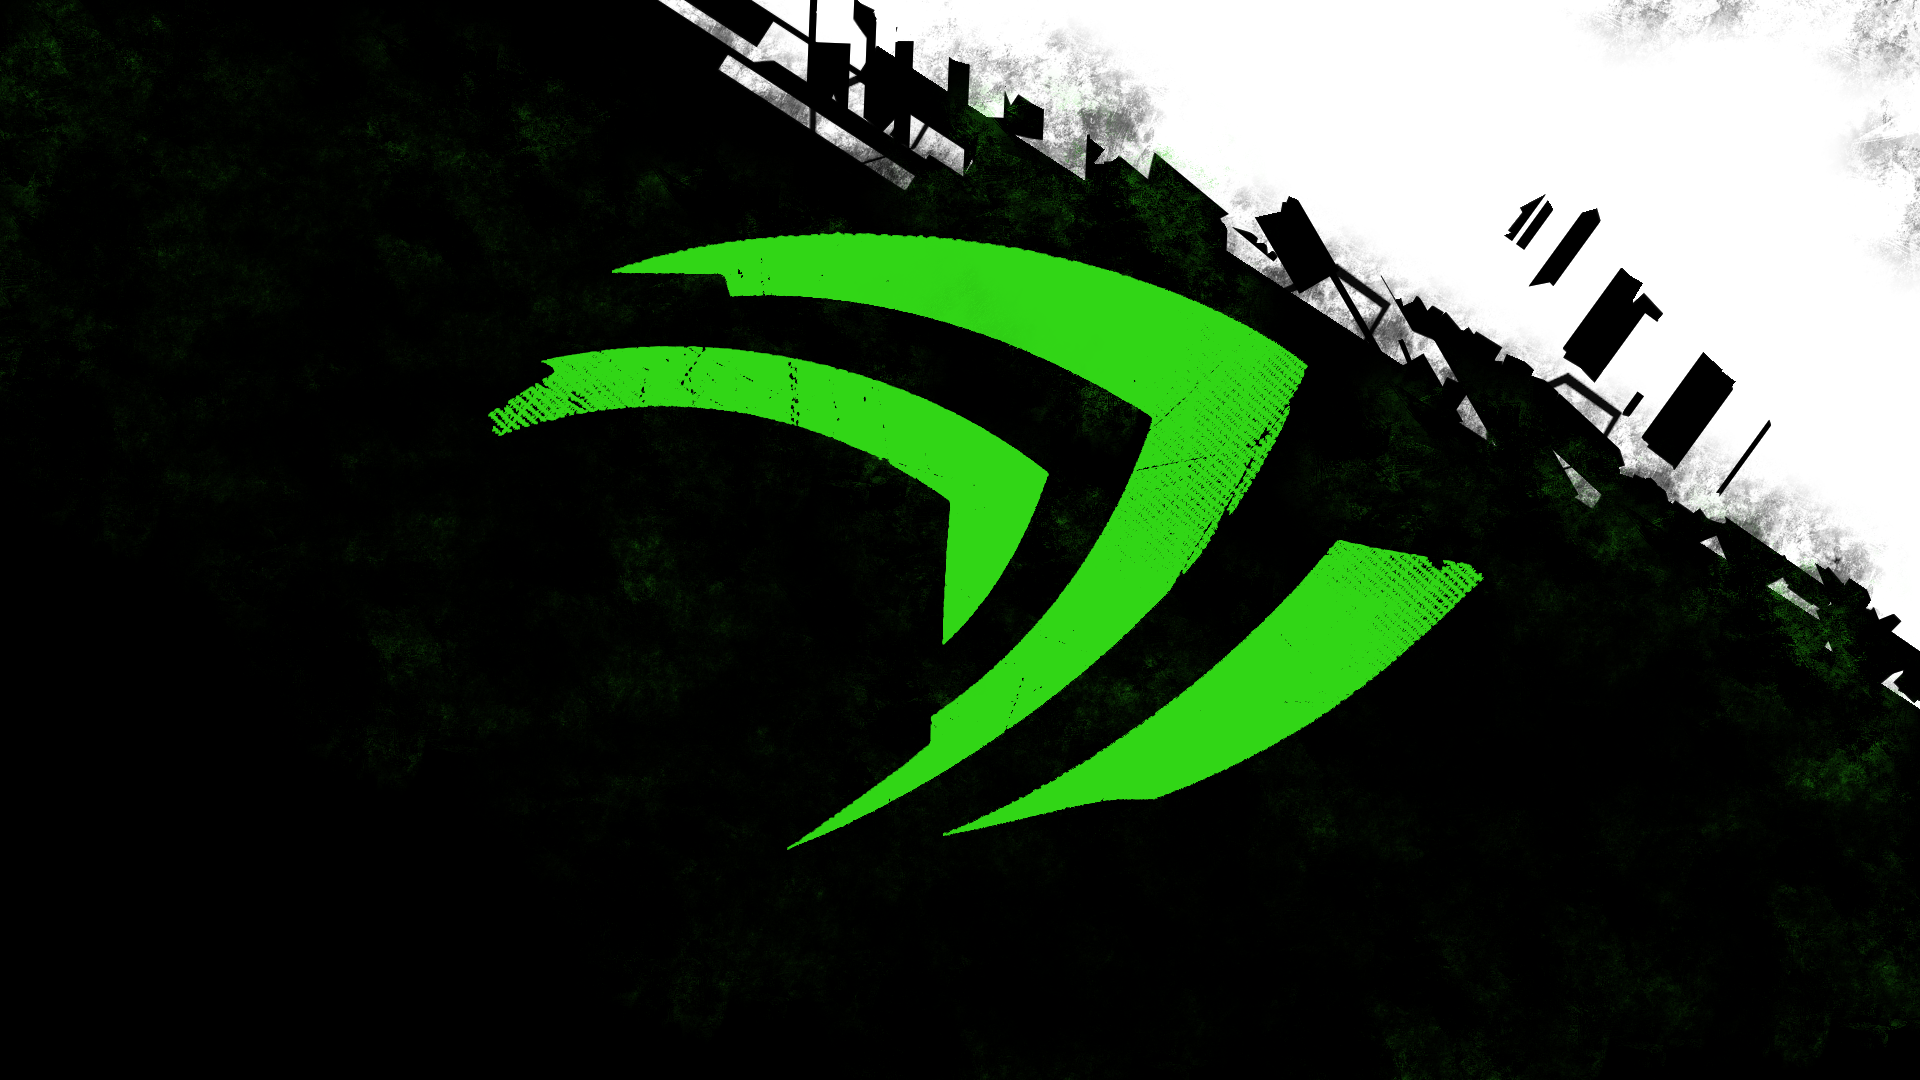 4k nvidia wallpaper wallpapersafari